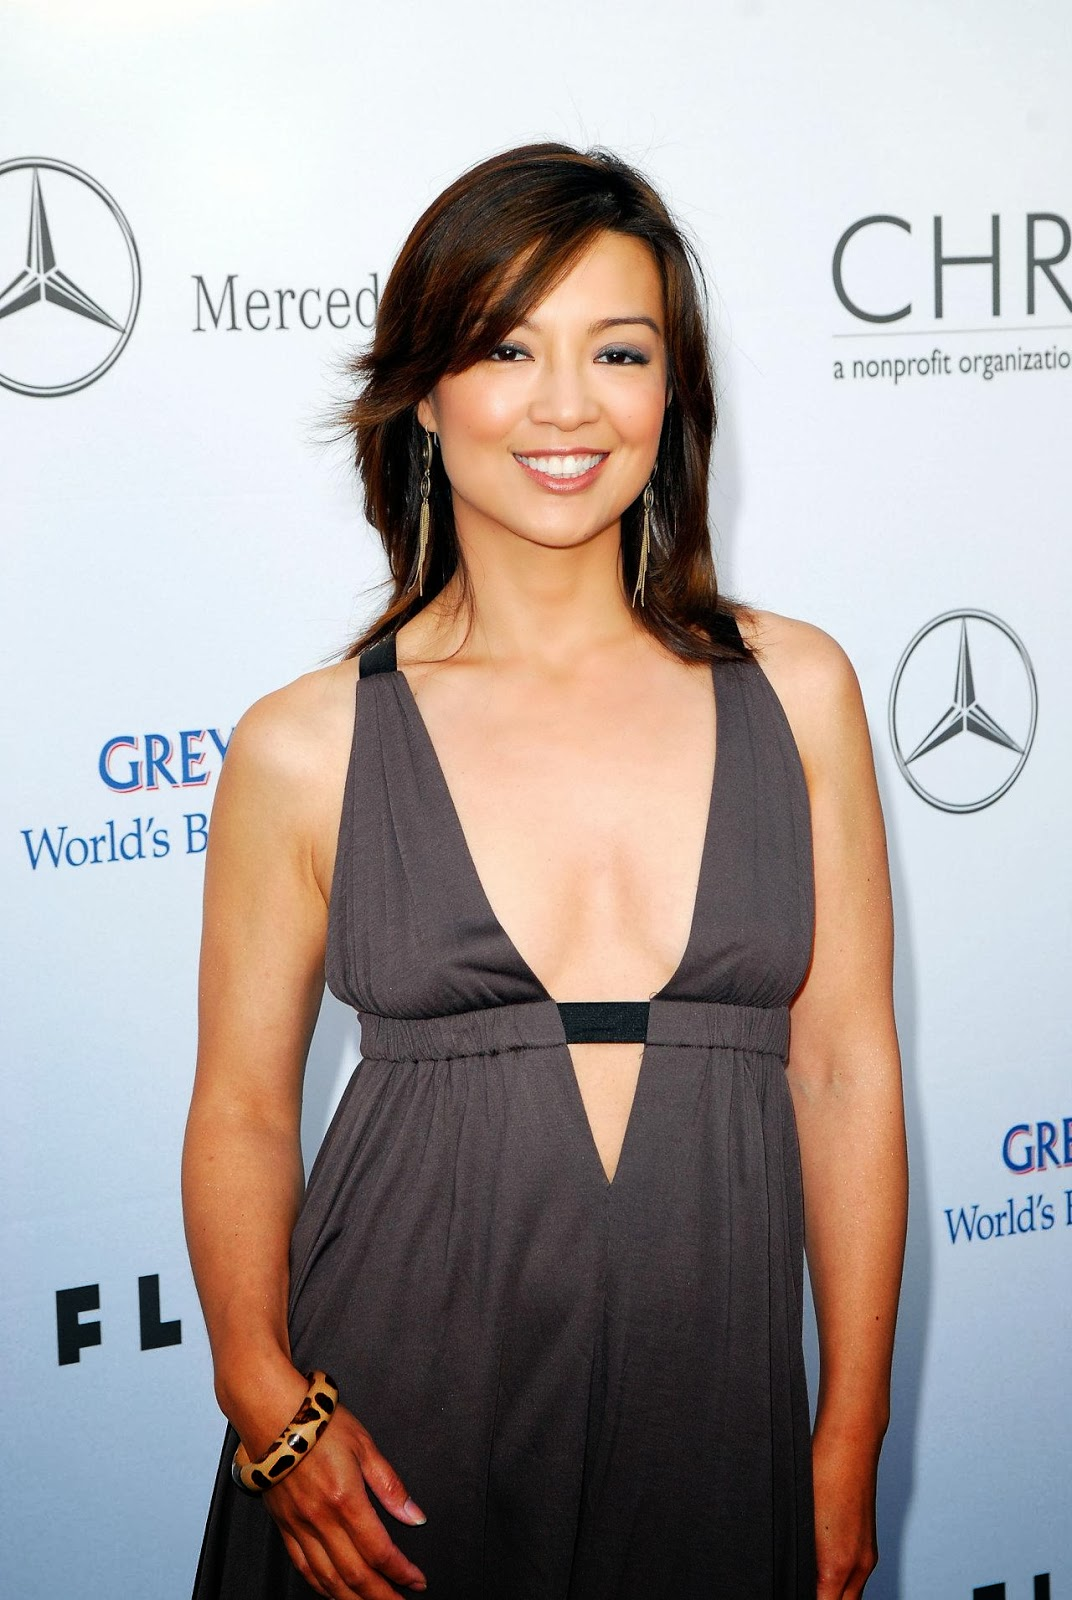 flawless and beautiful devastatingly sexy actress mingna